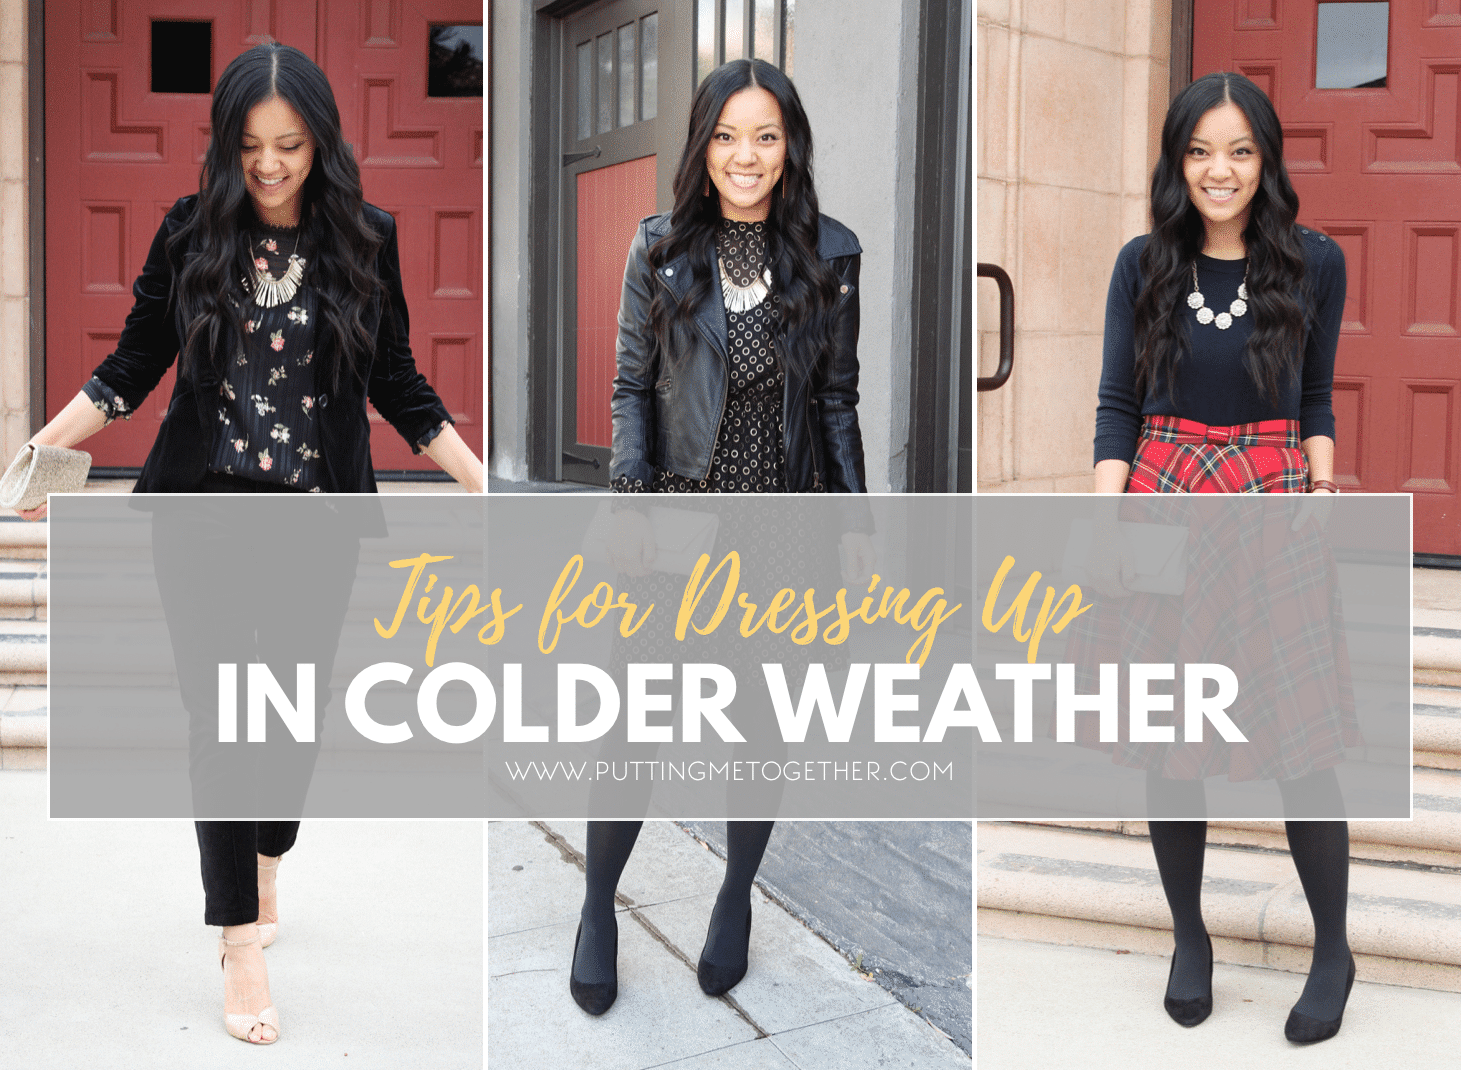 How to Dress Up In the Winter When It's Cold